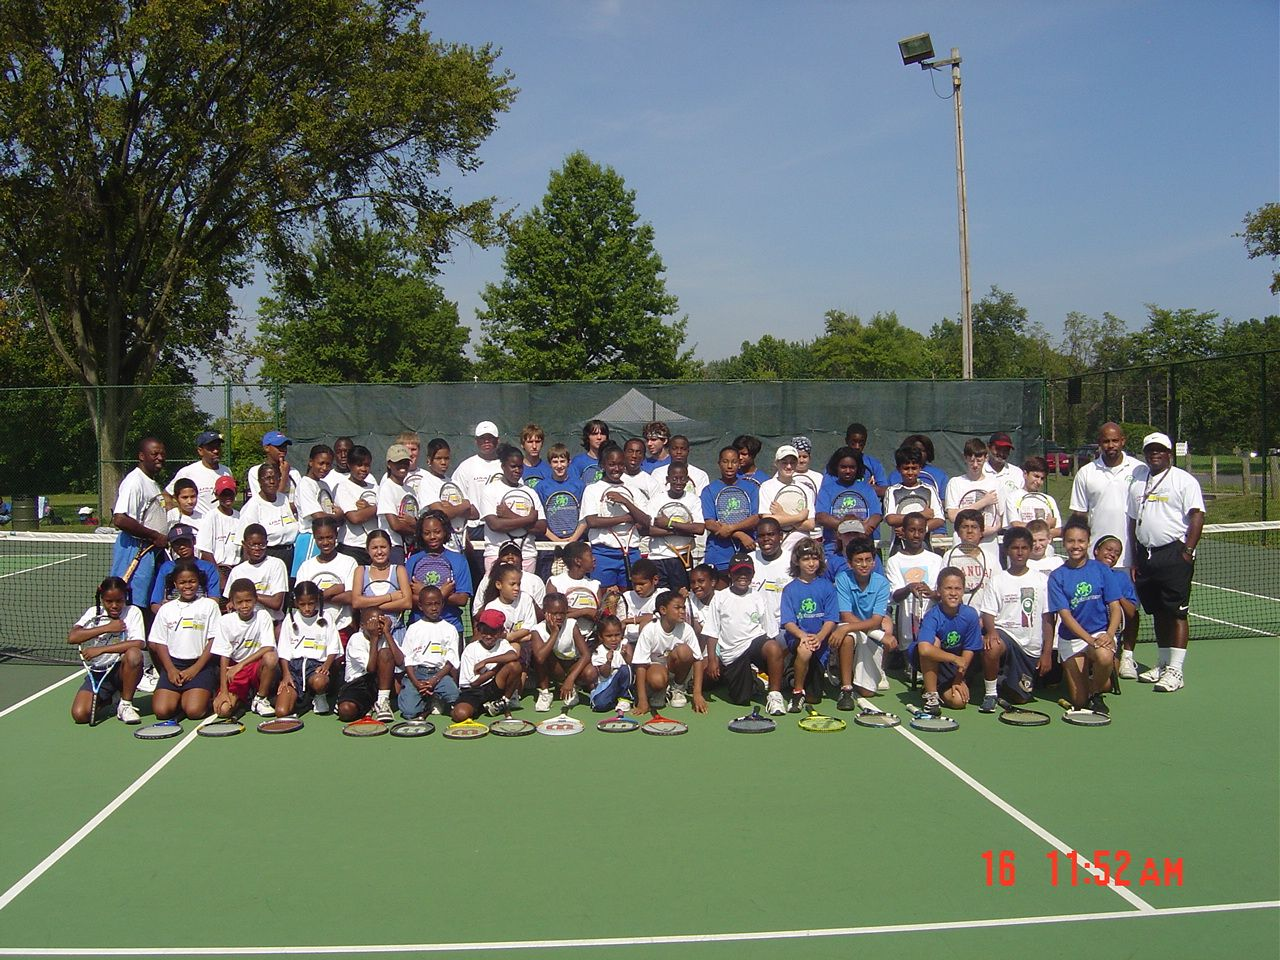 Hadley Park Junior Developement at Newburg with Rising Stars